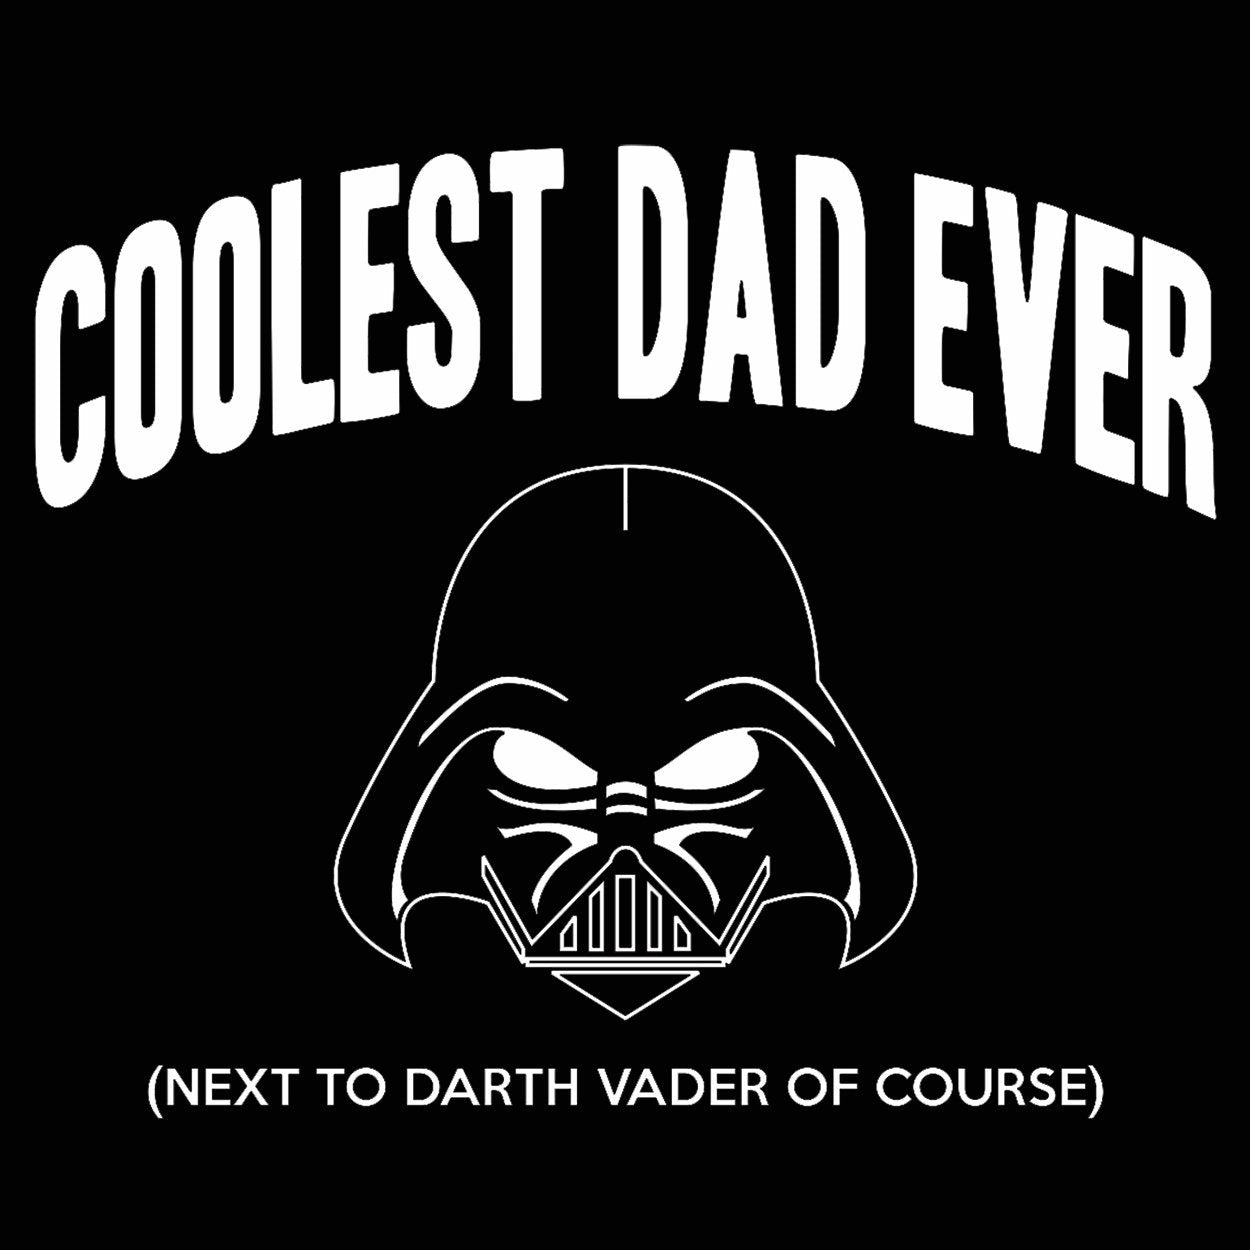 Star Wars Coolest Dad Ever